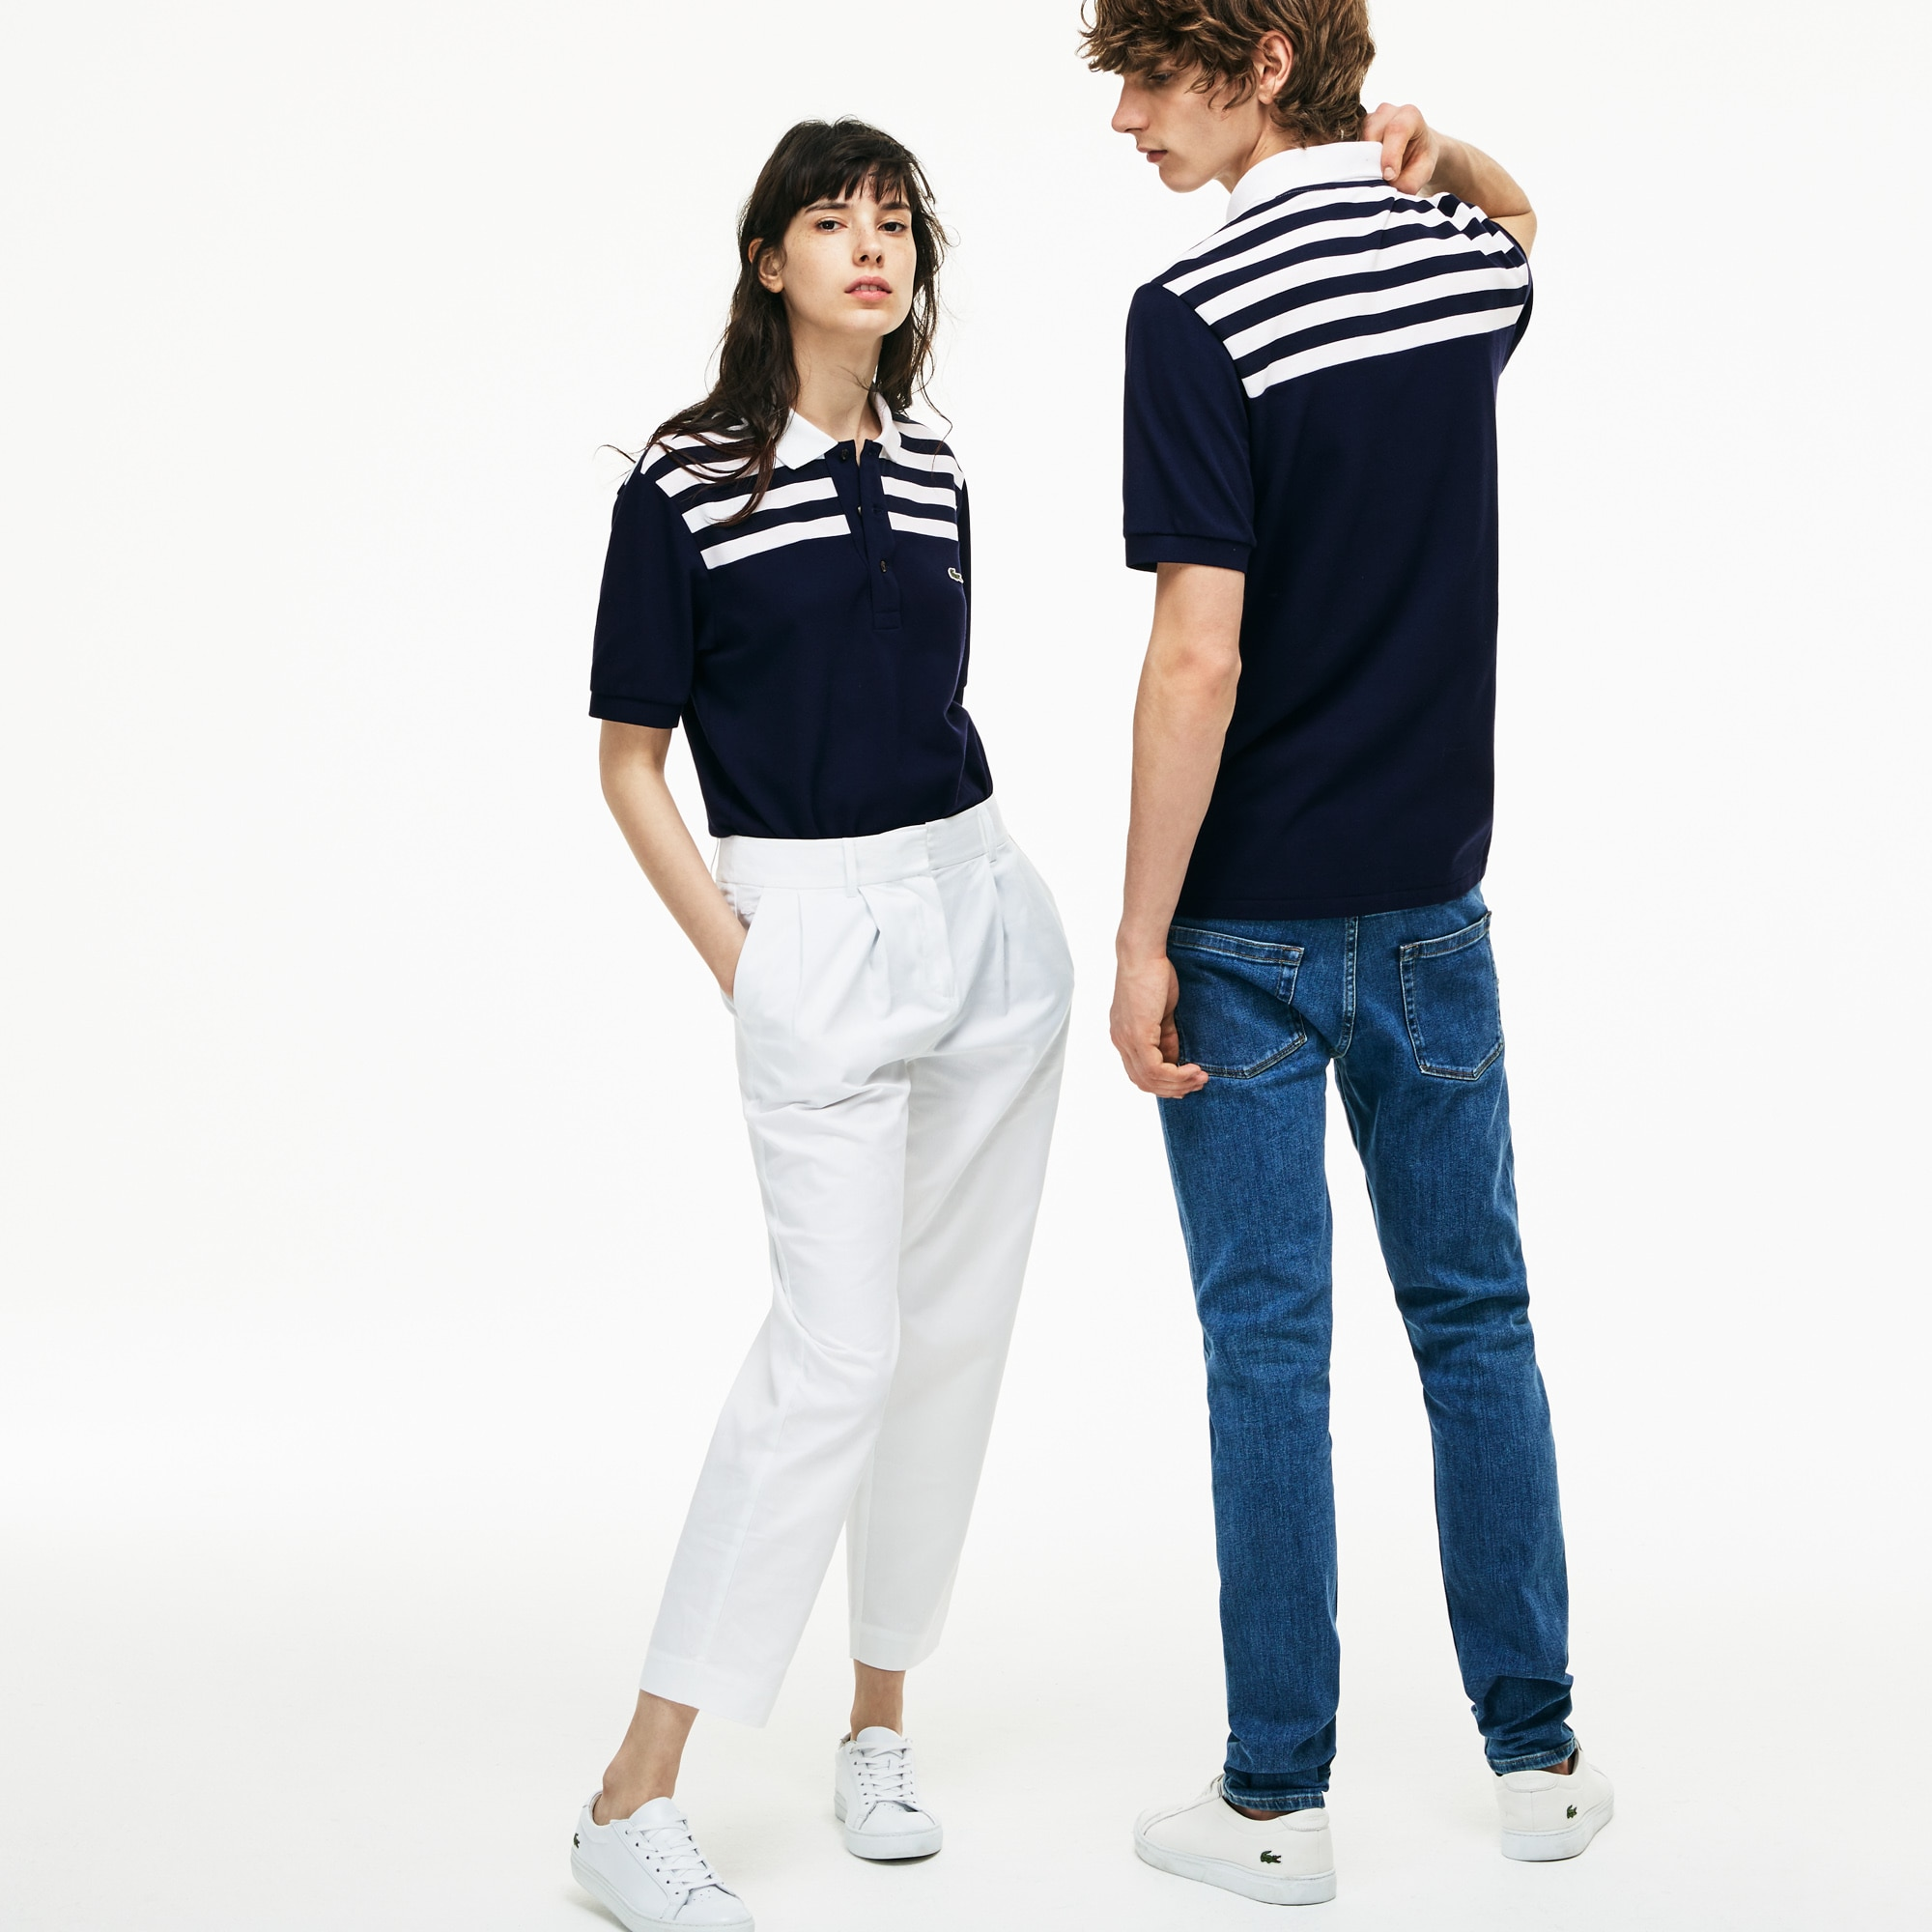 Unisex L.12.12 85th Anniversary Limited Edition Piqué Polo